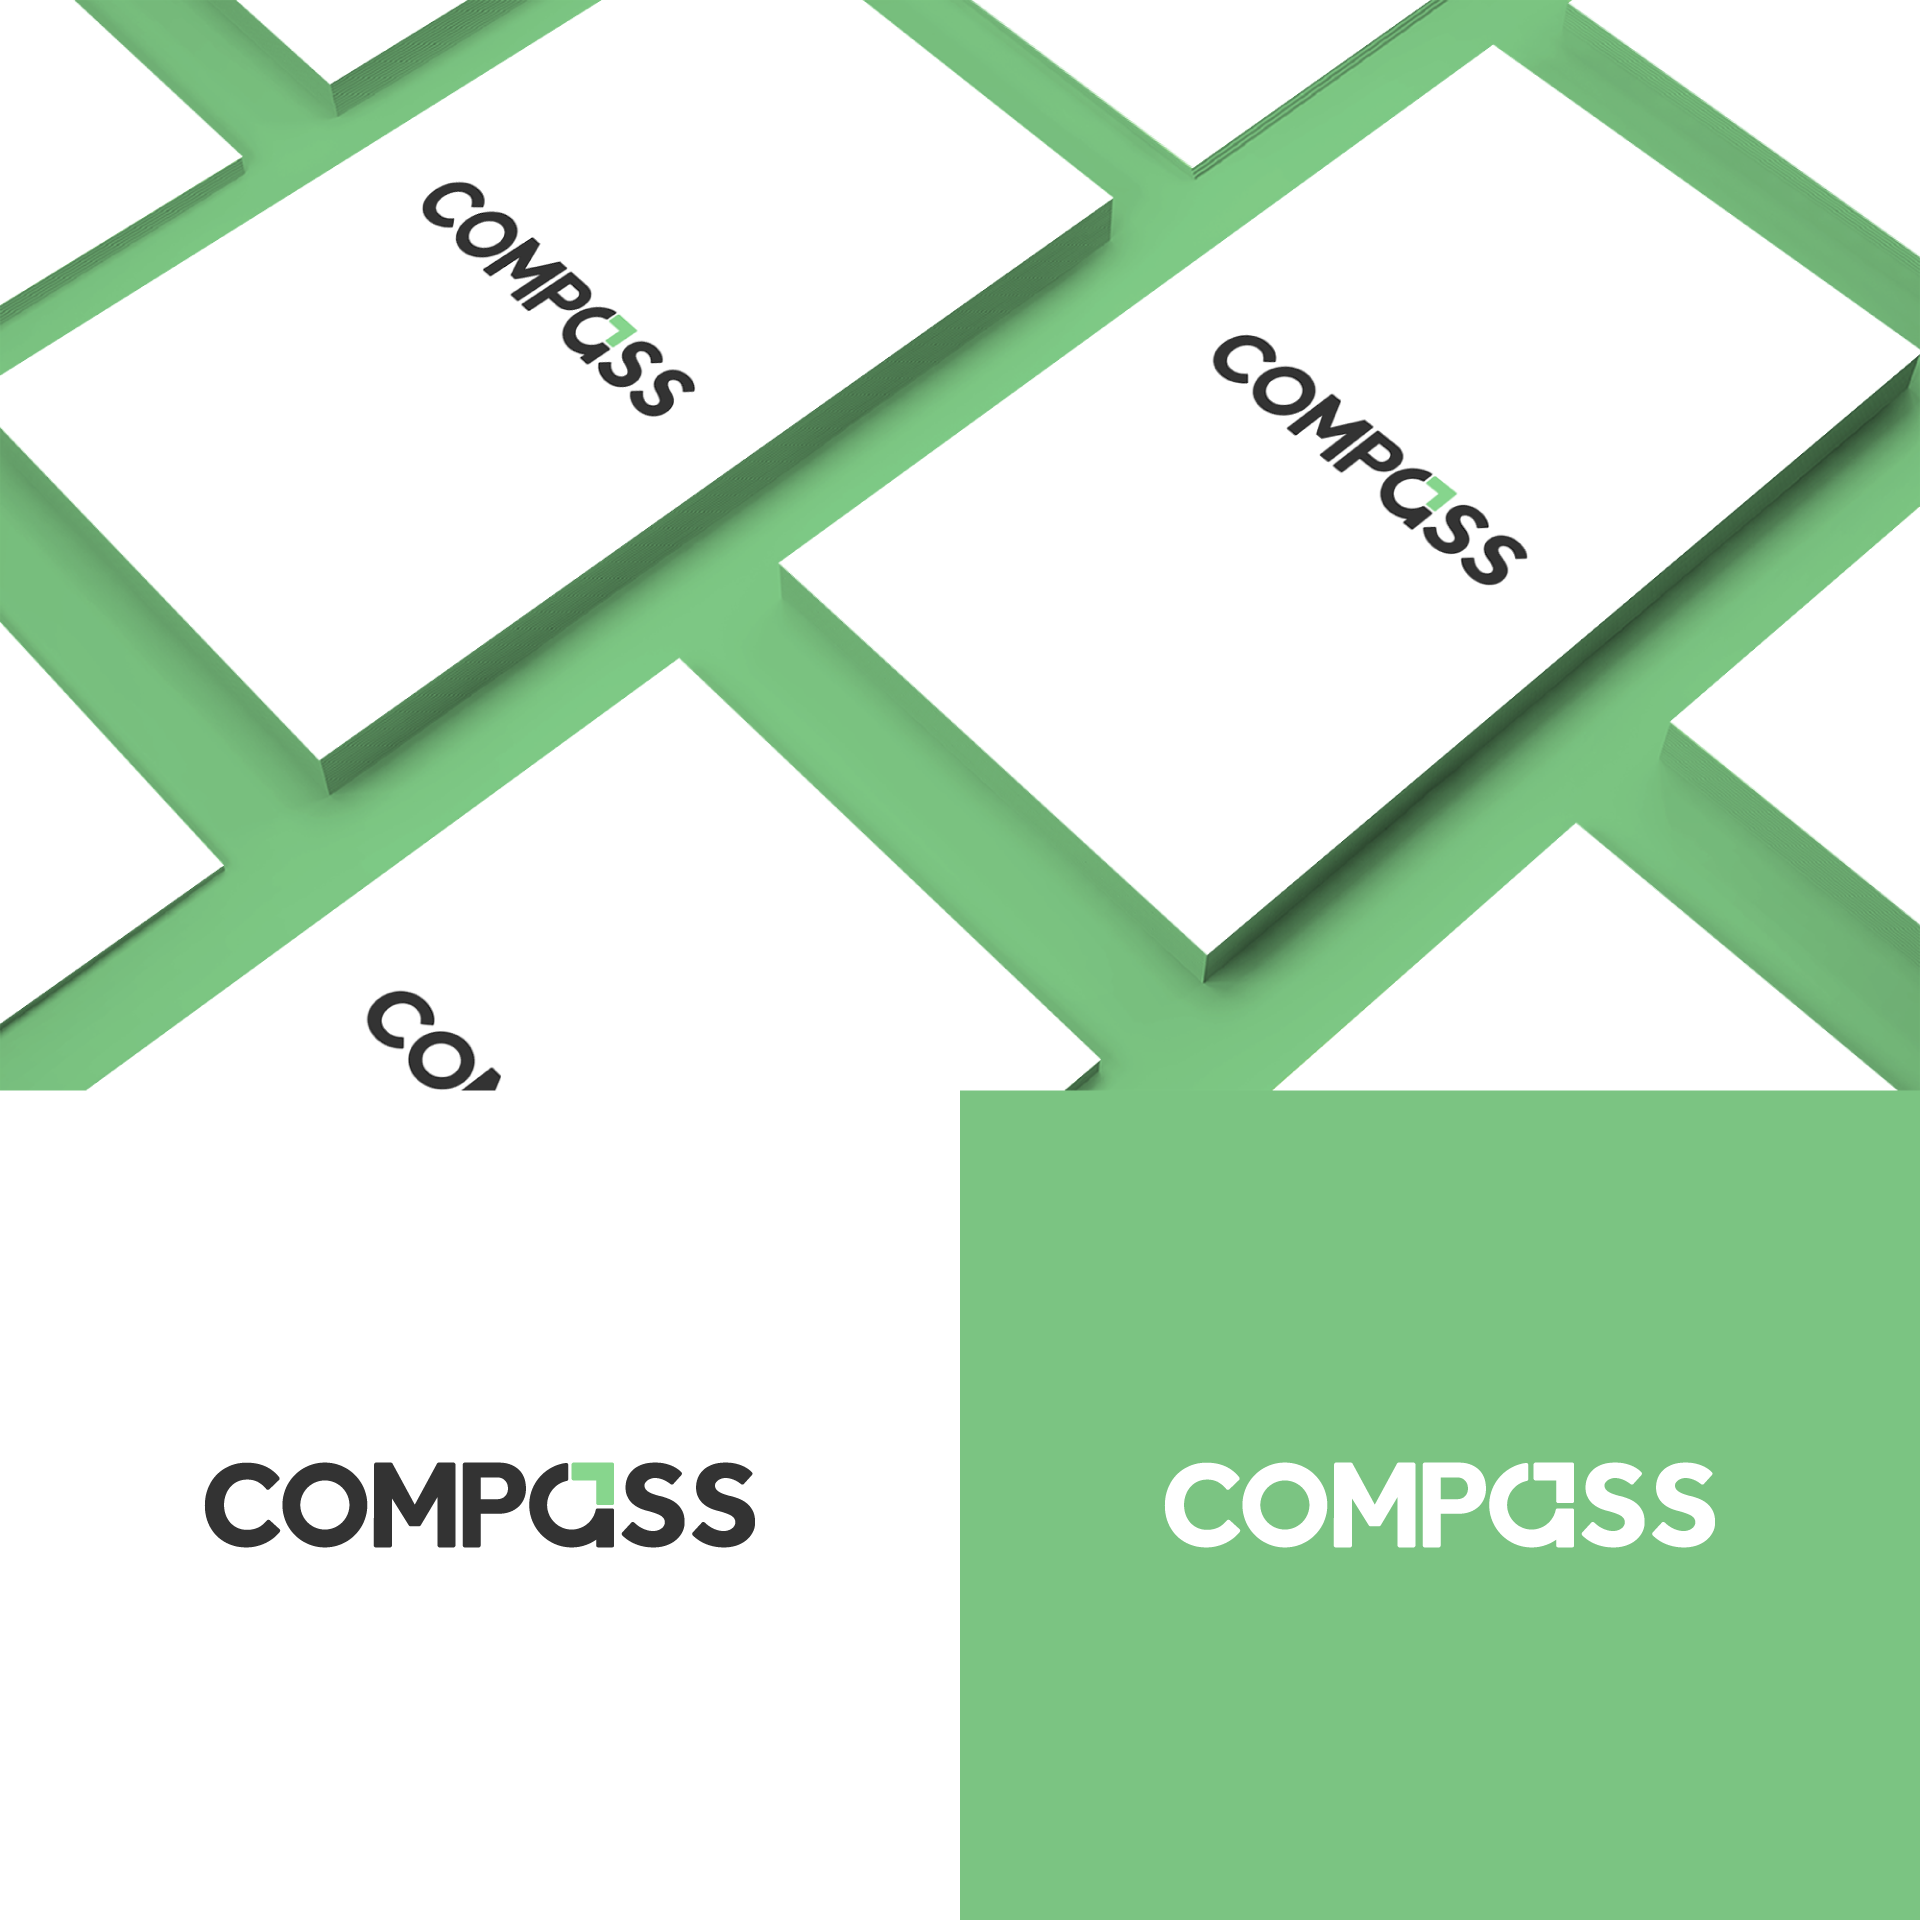 compass-square-01.png